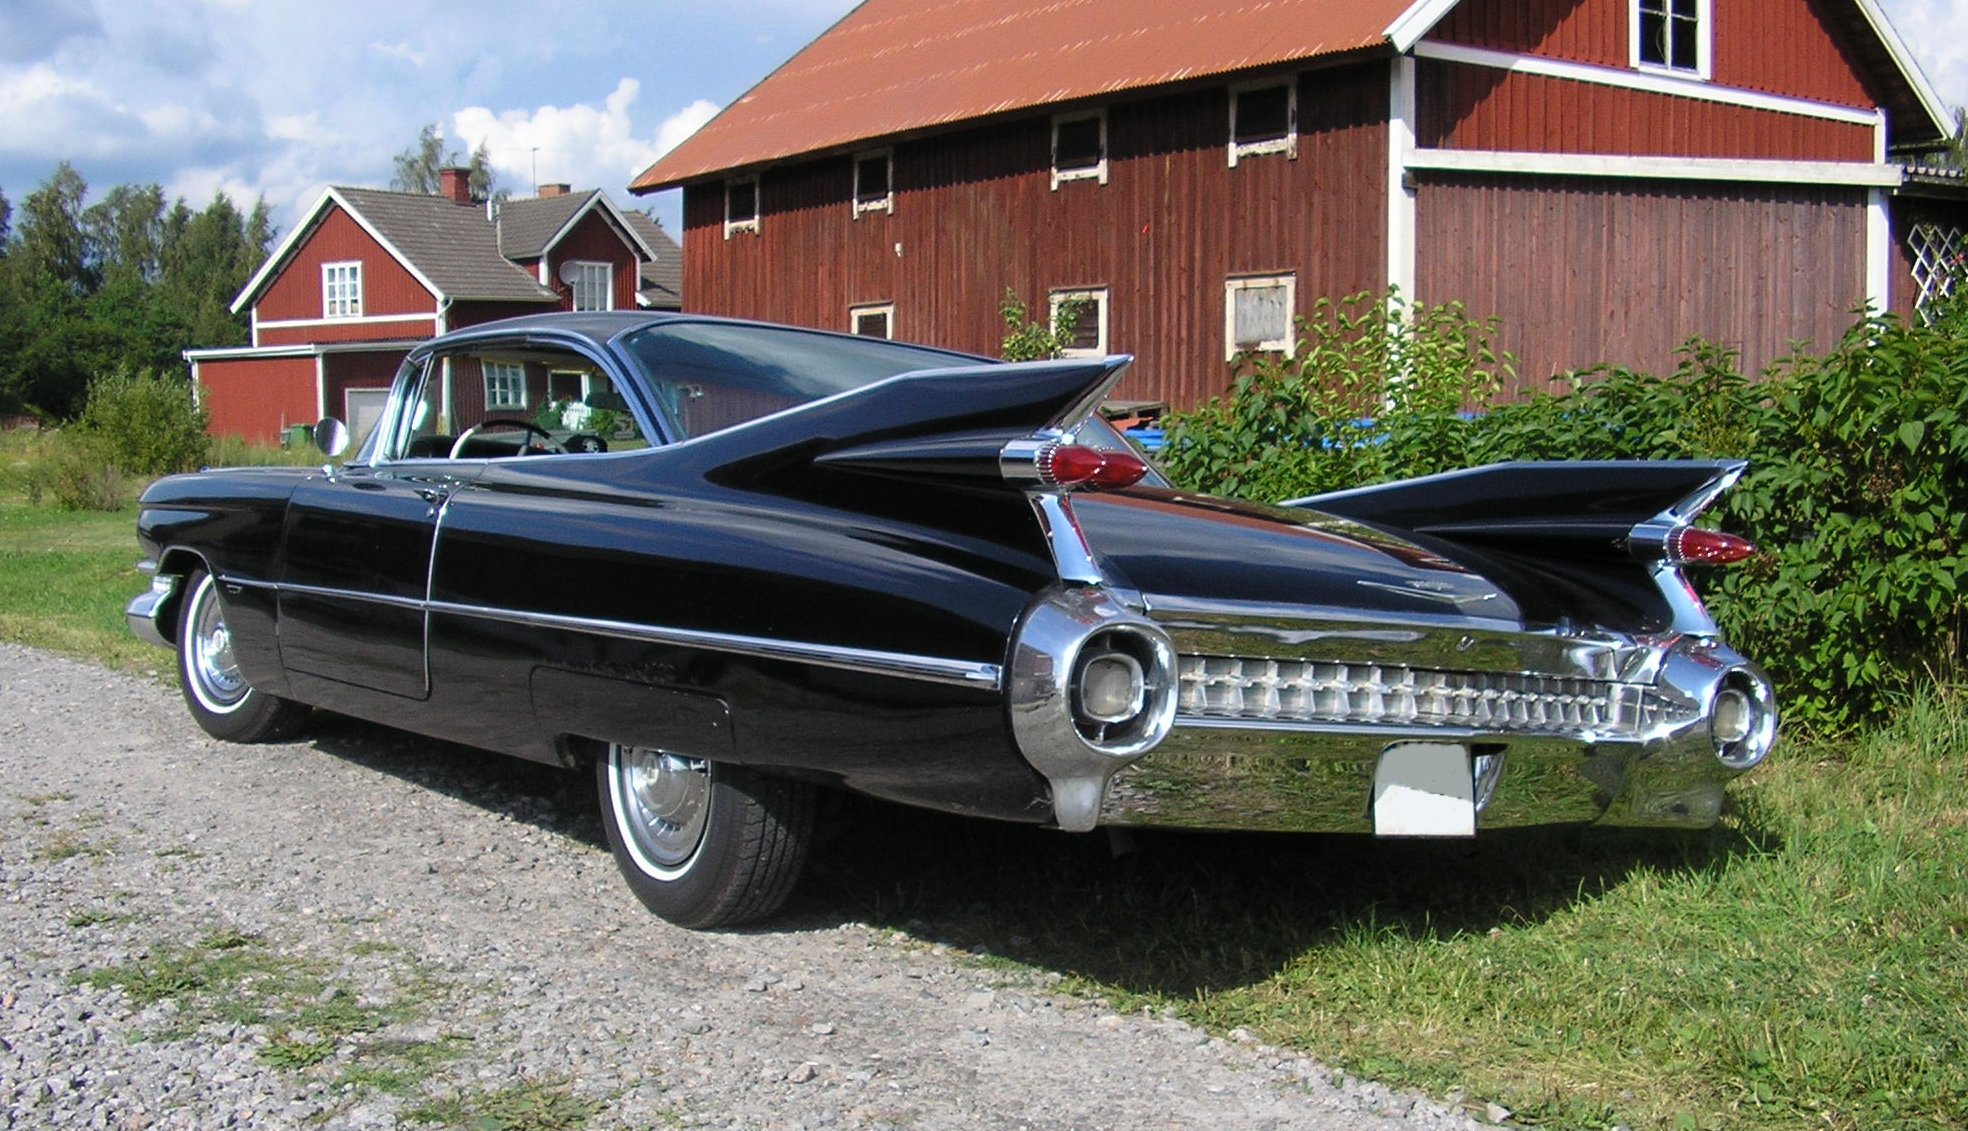 Description Cadillac-1959-rear.jpg